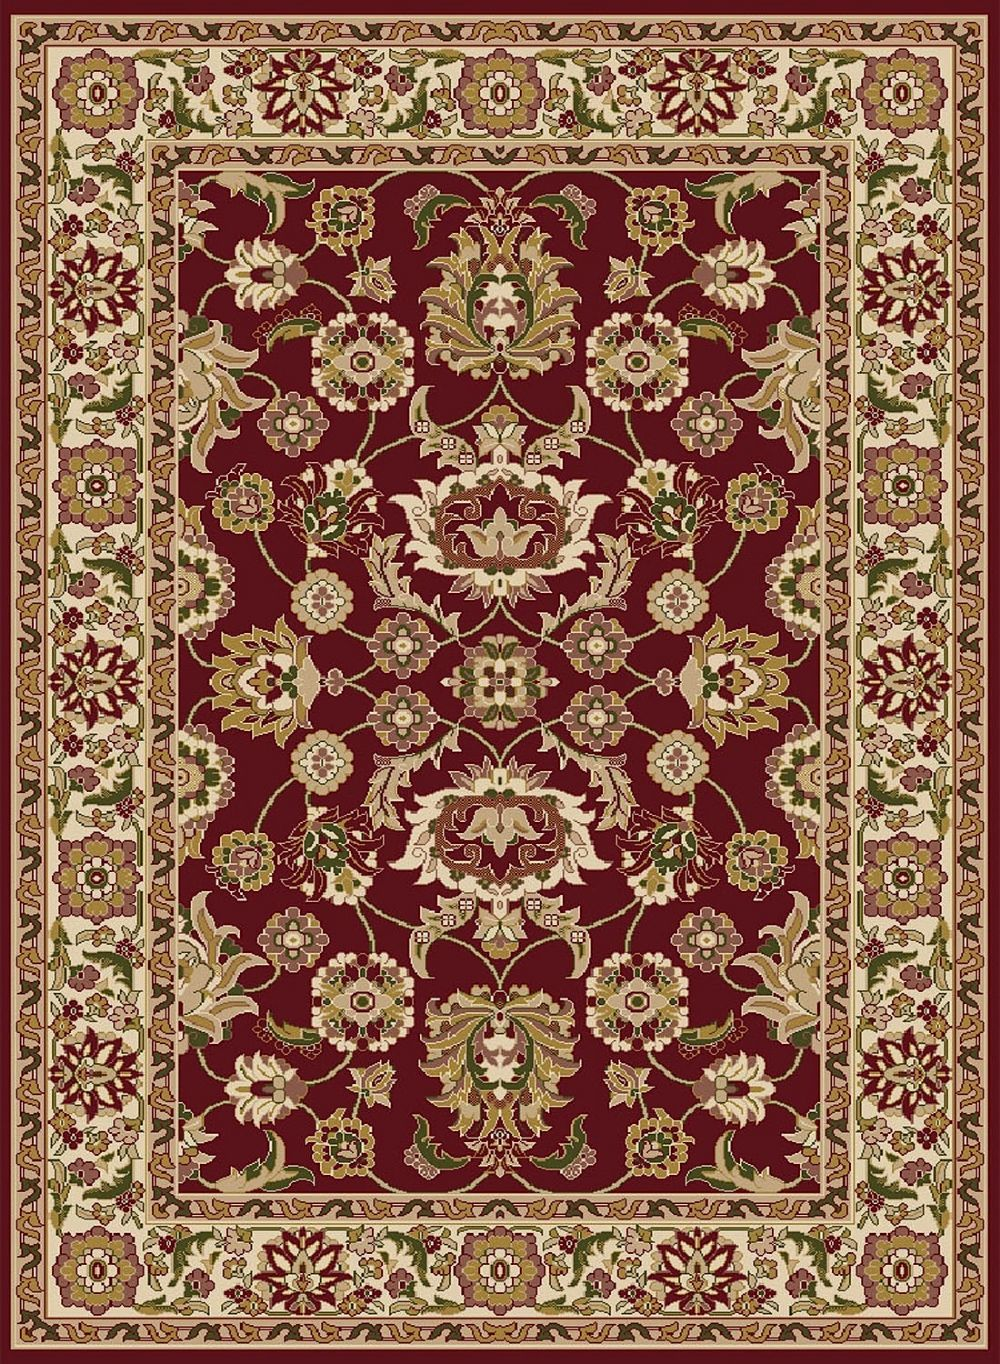 central oriental gallery 4-piece sets (18x3, 110x611, 45x611, 67x96) traditional area rug collection